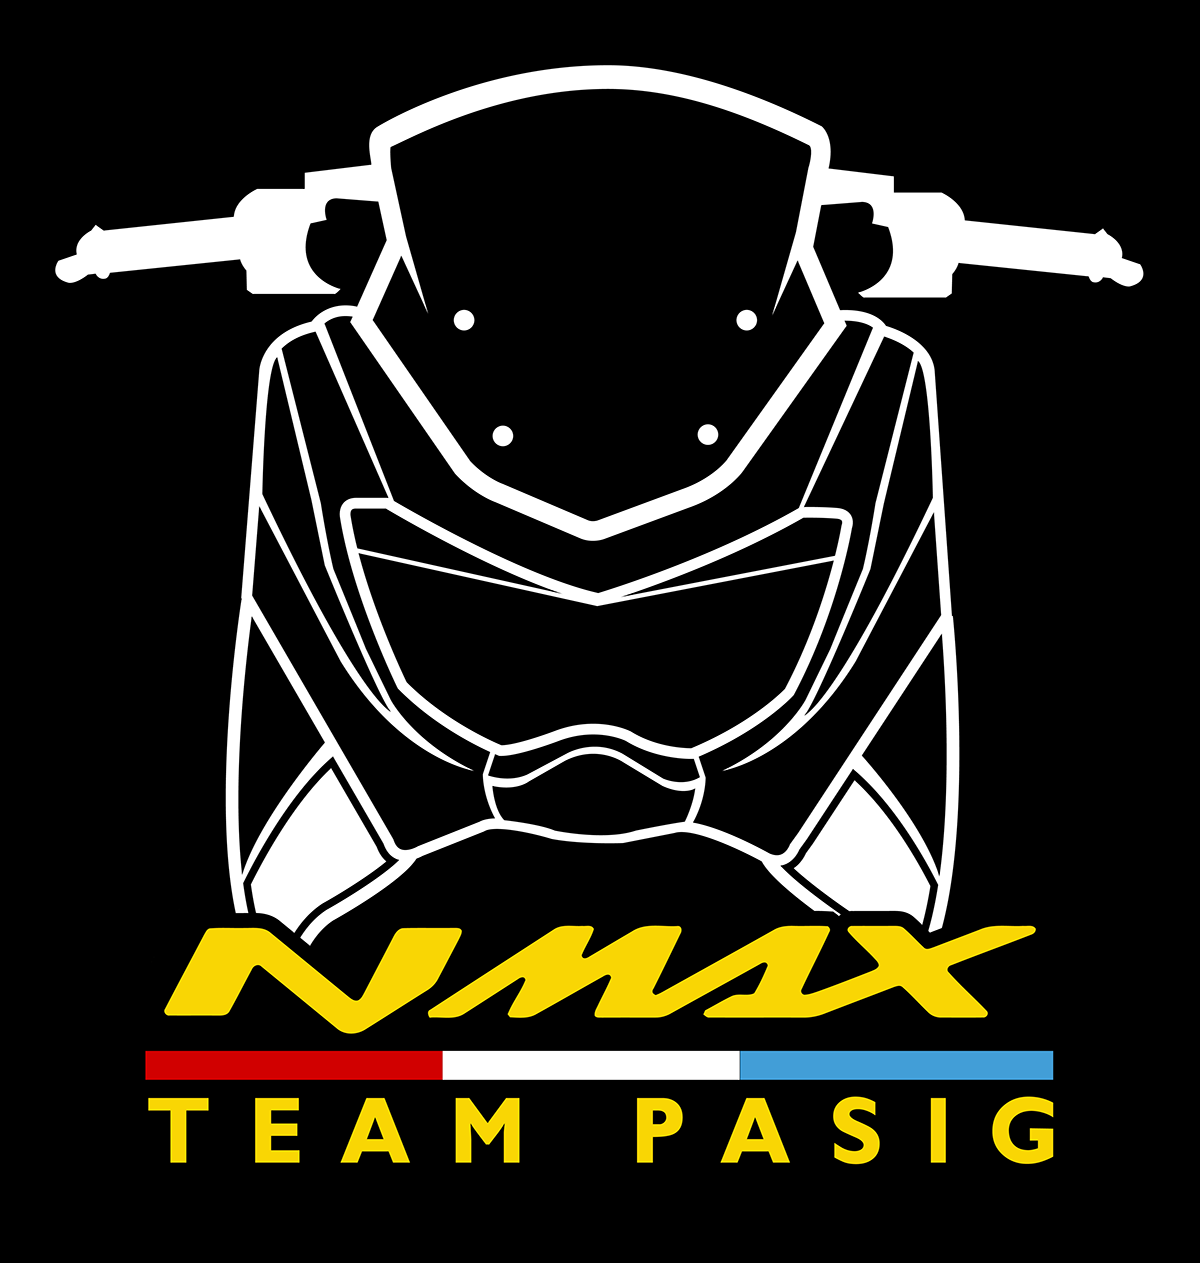 Club nmax philippines front shirt design on behance scooters yamaha philippines shirt designs